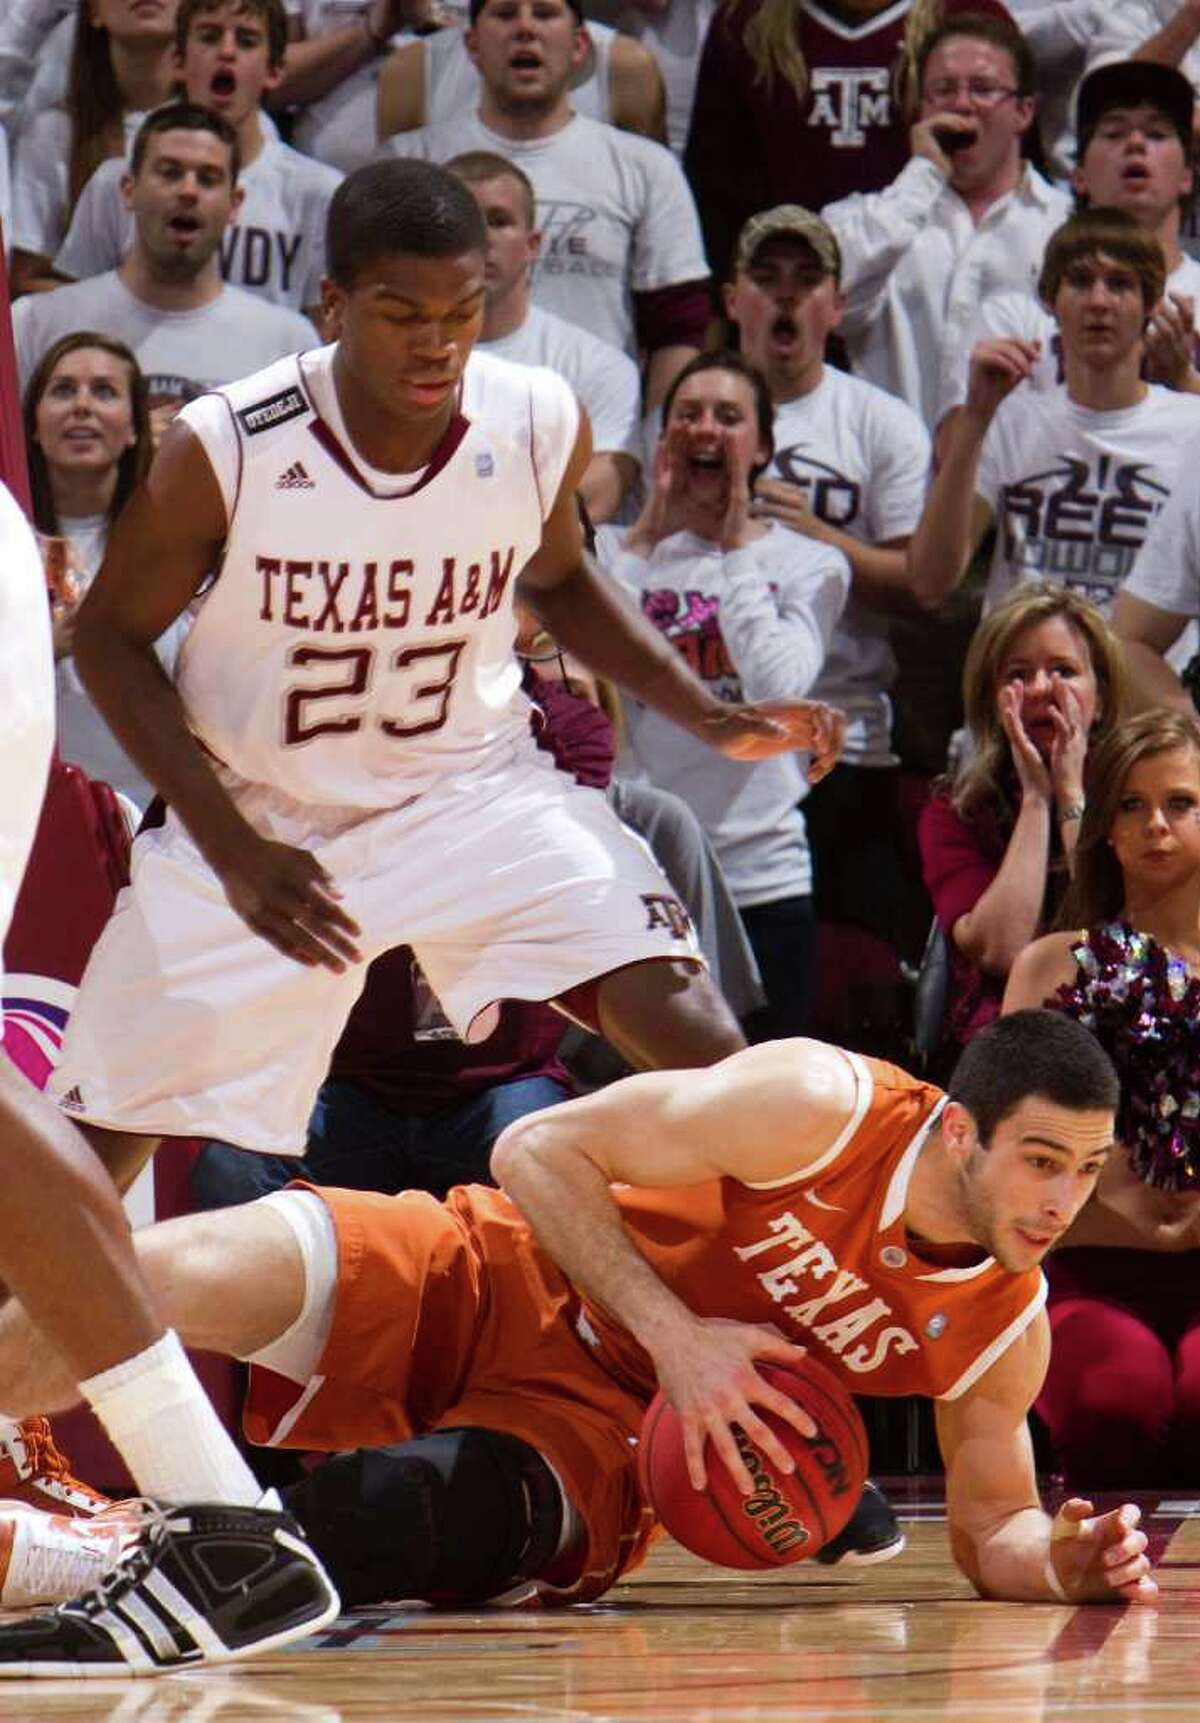 Texas guard Dogus Balbay (bottom) dives for the ball against Texas A&M defender Naji Hibbert during the first half on Monday, Jan. 31, 2011, in College Station.